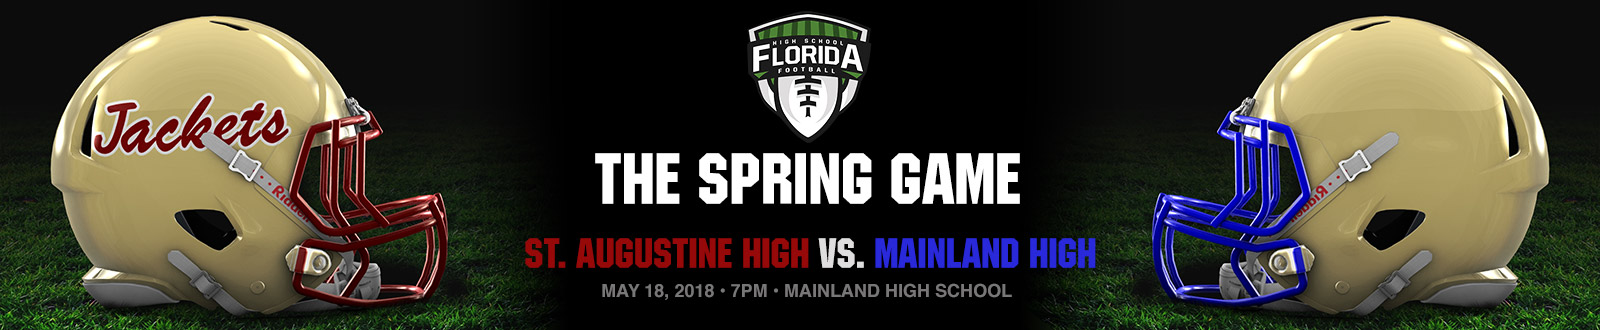 Spring Game - St. Augustine at Mainland